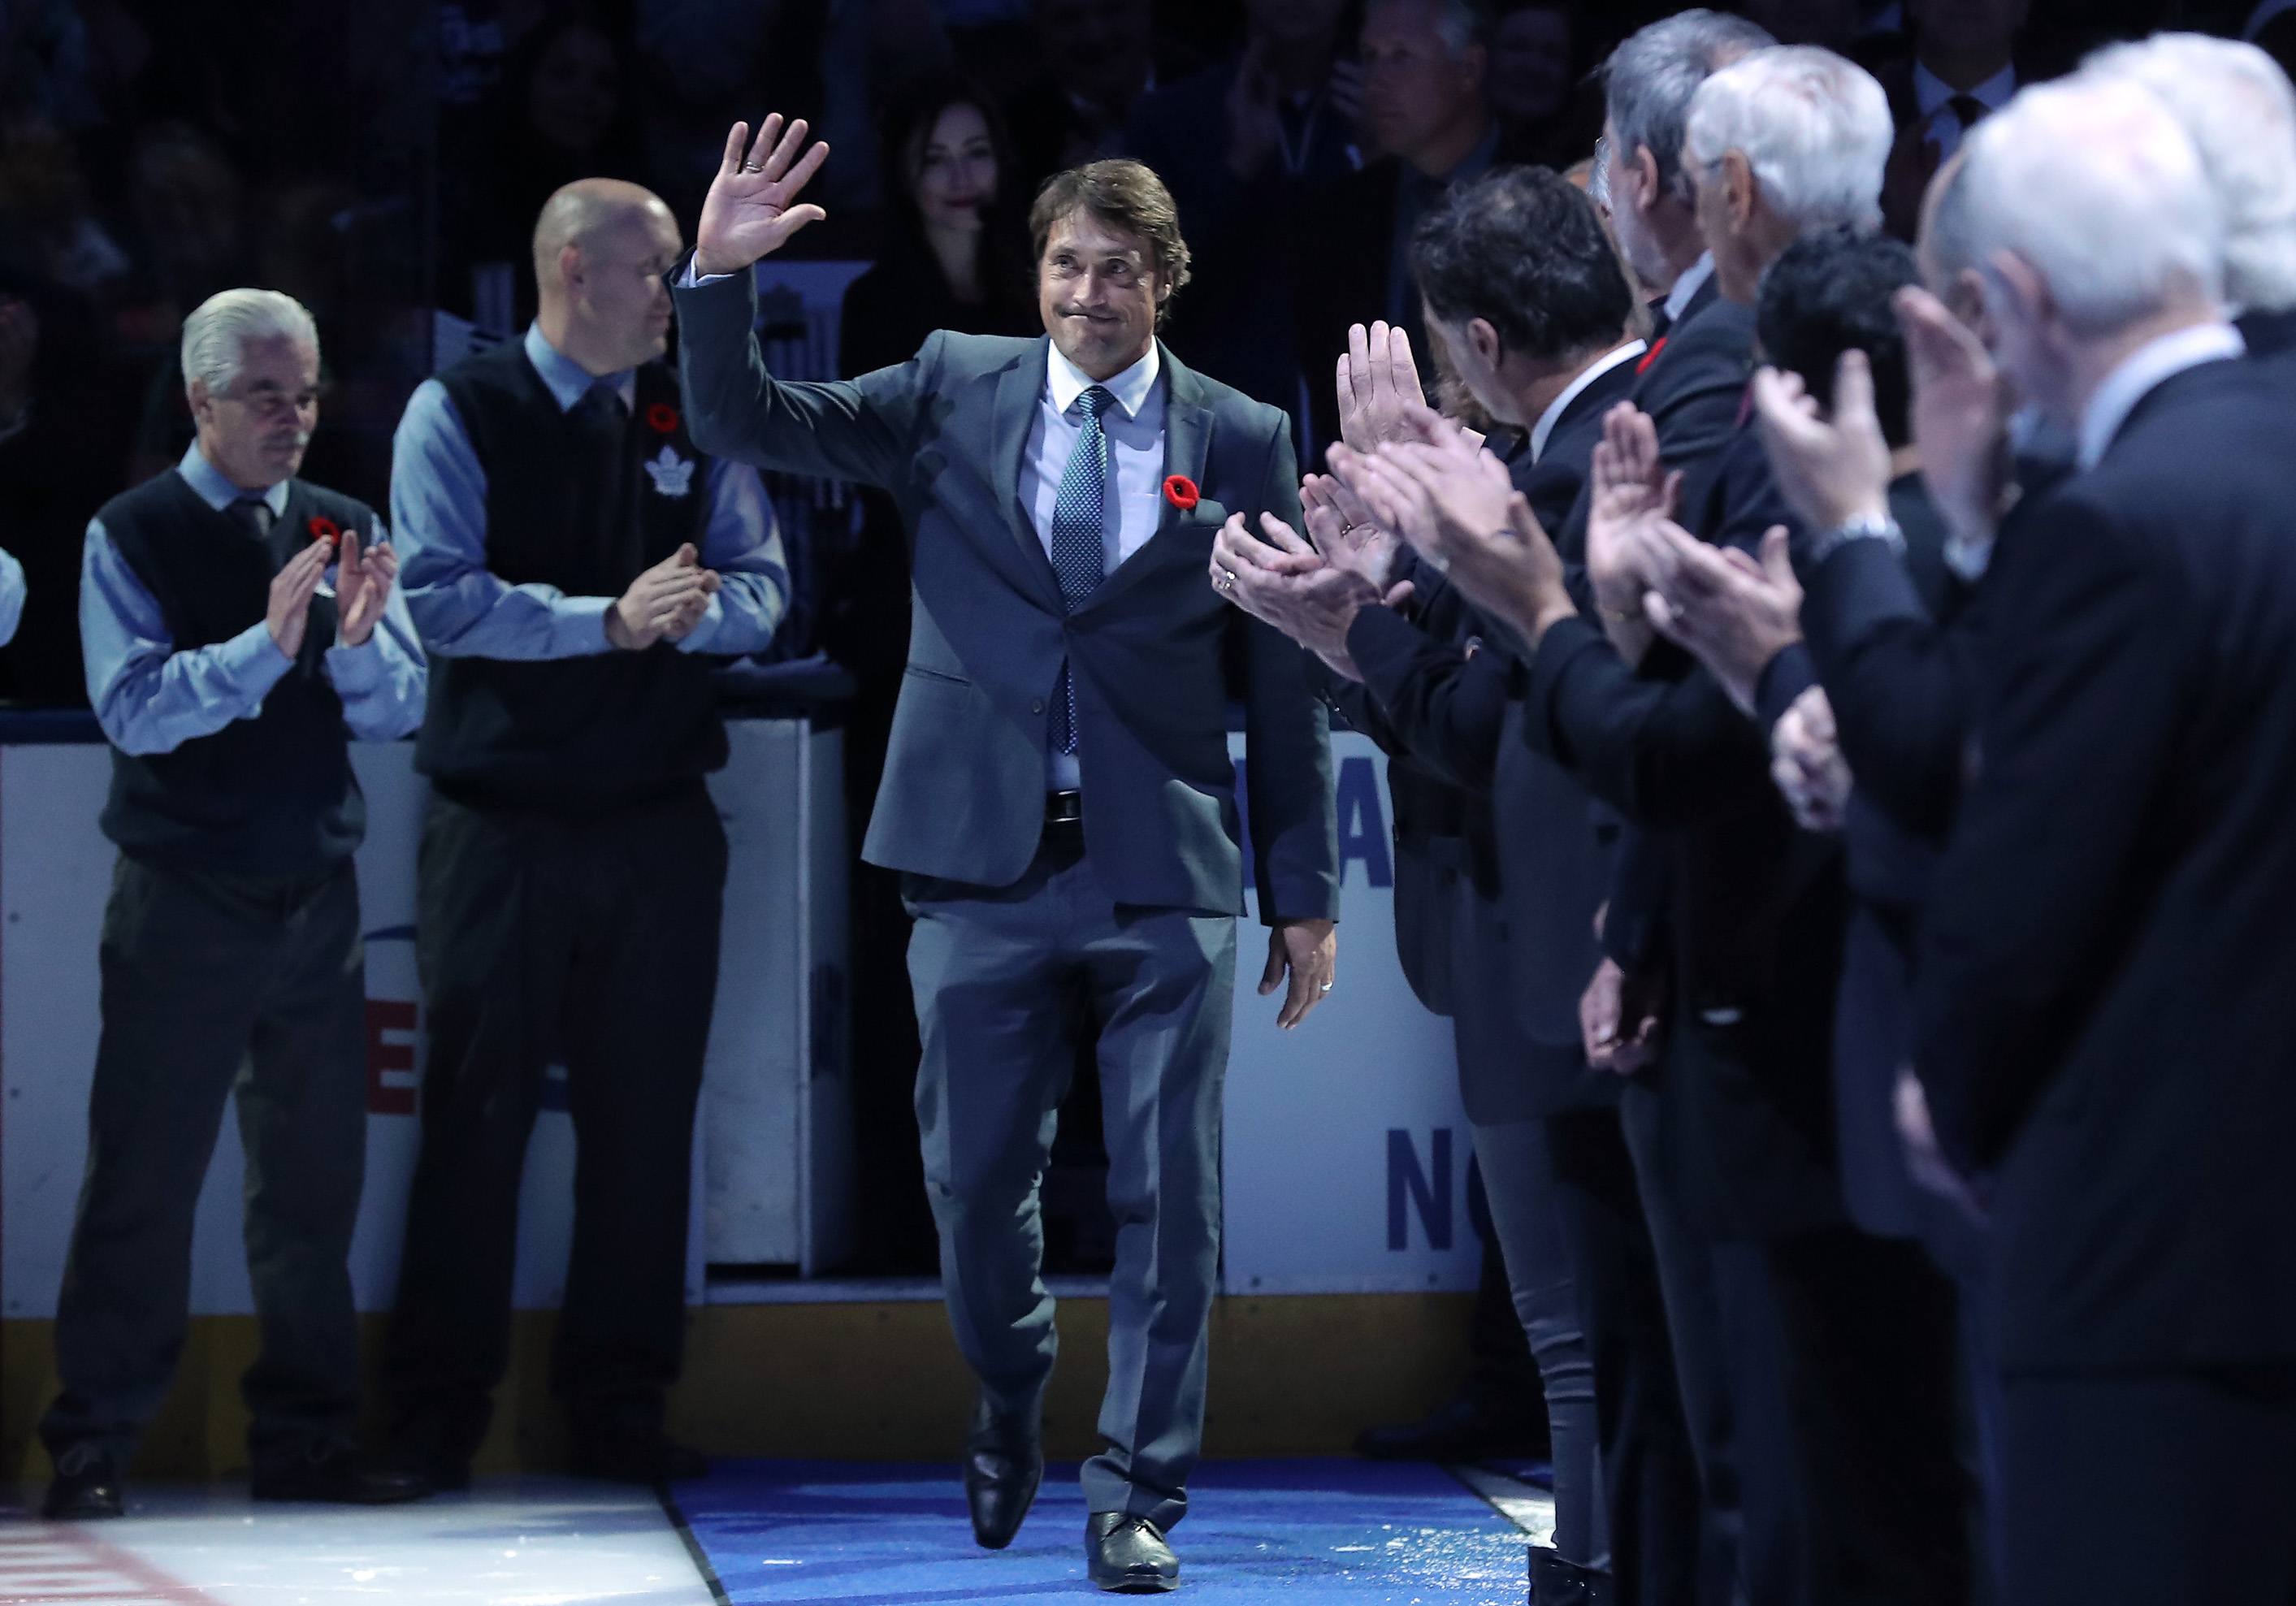 Nov 10, 2017; Toronto, Ontario, CAN; Teemu Selanne acknowledges the applause as he is introduced before his induction into the Hockey Hall of Fame before the Boston Bruins Hockey Hall of Fame Game against the Toronto Maple Leafs at Air Canada Centre. The Maple Leafs beat the Bruins 3-2 in overtime.